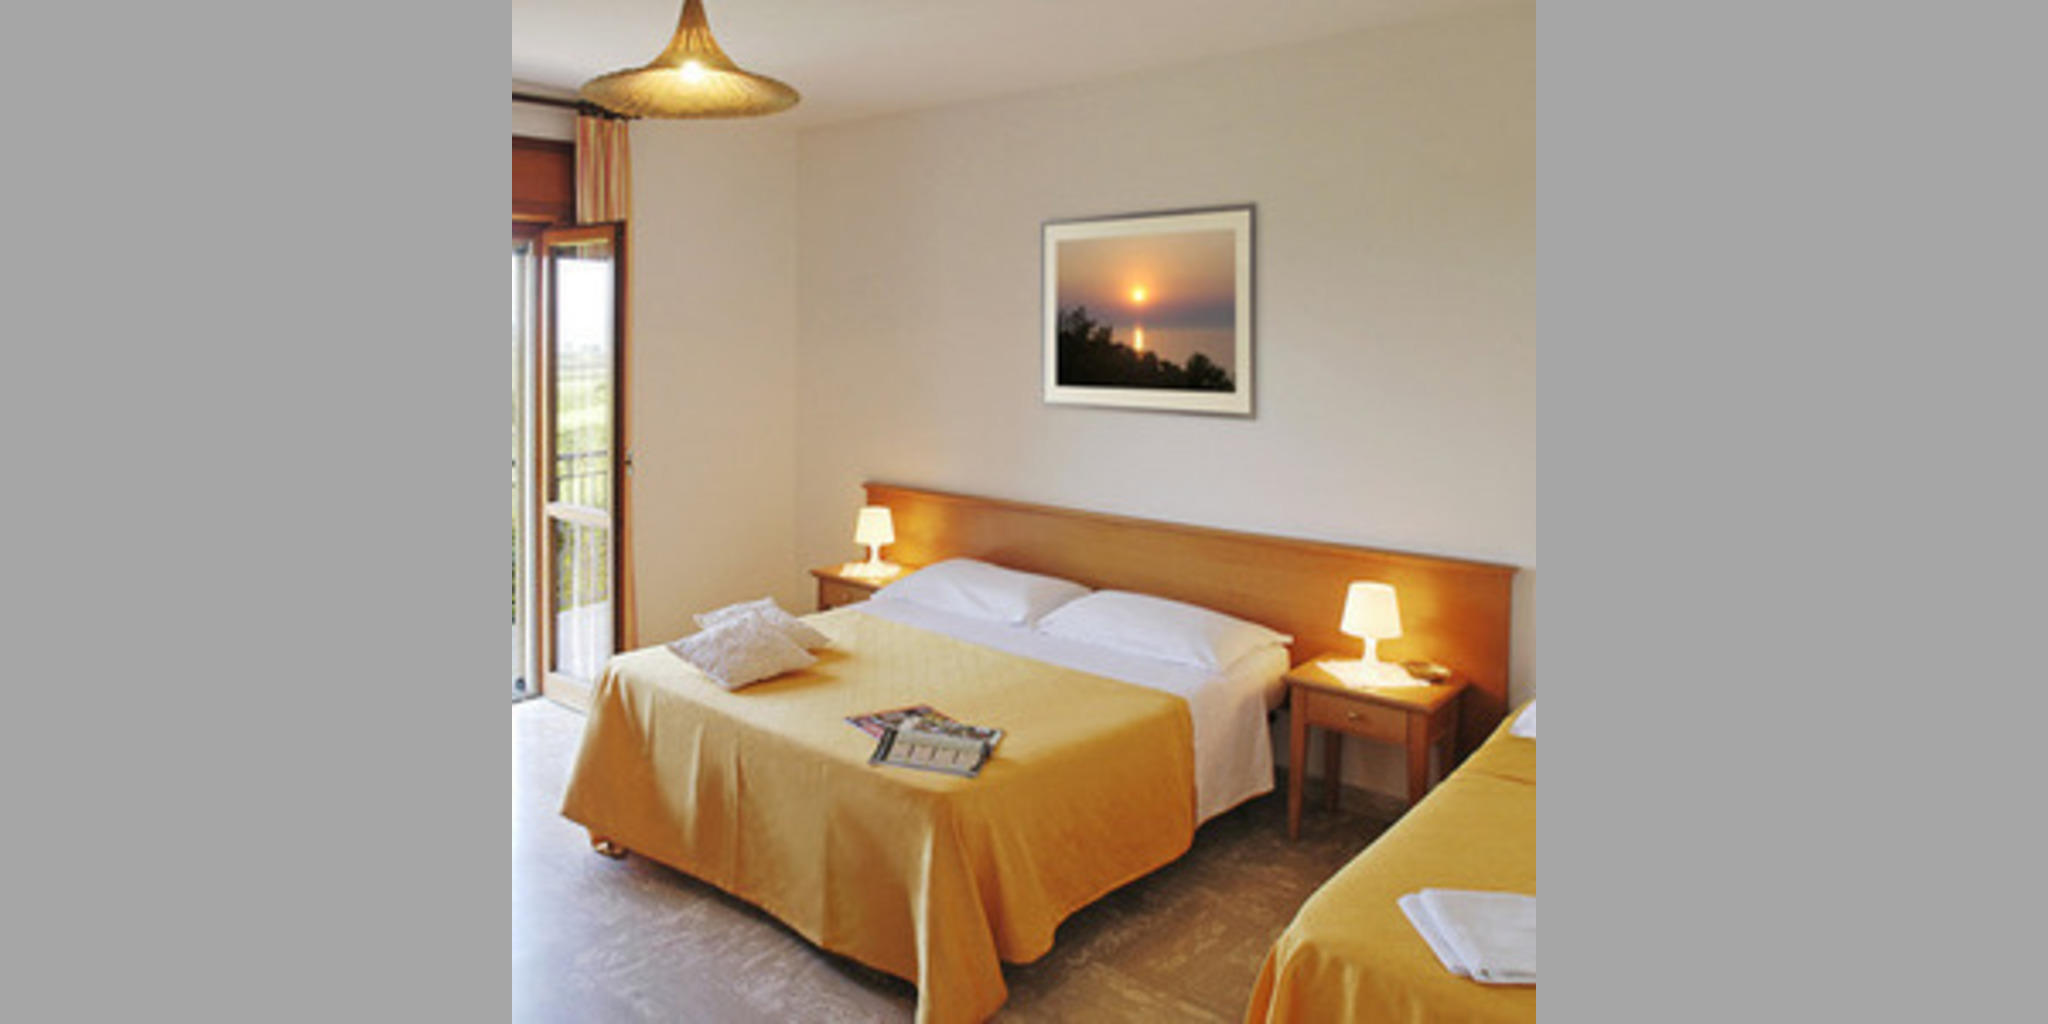 Bed & Breakfast Capaccio - Capaccio